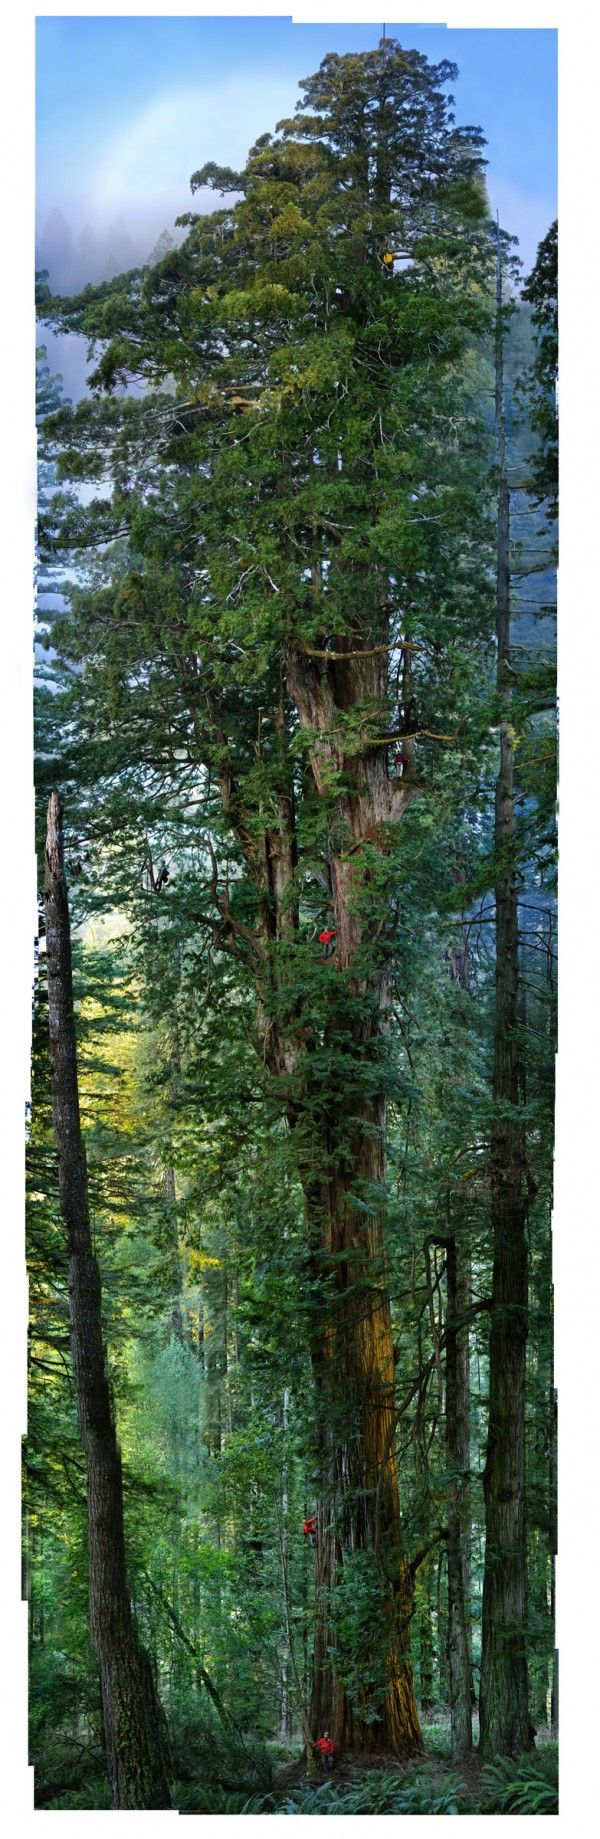 Redwood by Nick Nichols and National Geographic: 1,600 year old redwood captured by stitching 84 photos taken by three cameras on a robotized rig. #Redwood #Photography #Nick_Nichols #nationalgeographic #thisiscolossal